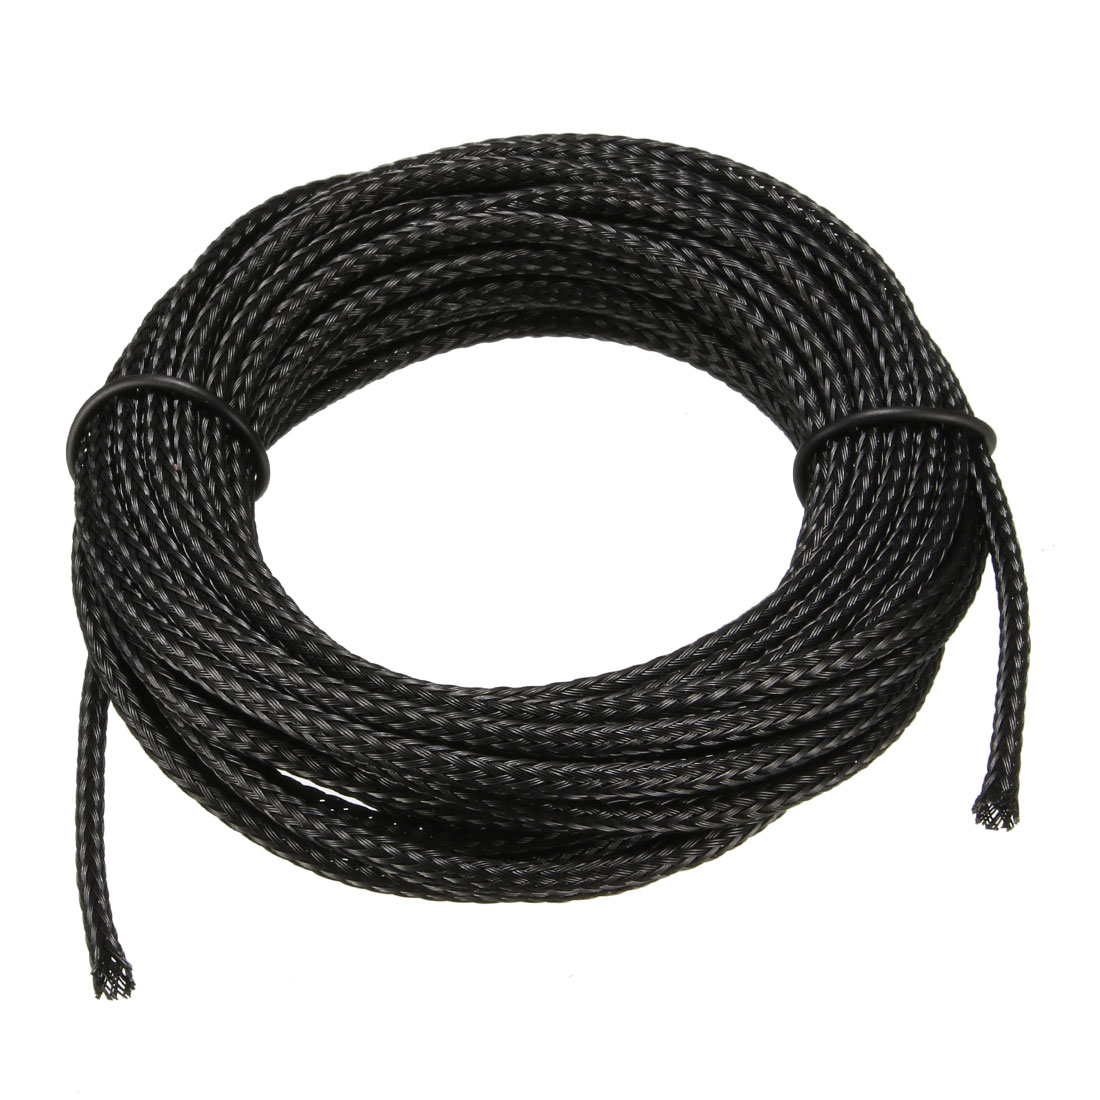 PET Braided Sleeving 16.4 Feet 5m Expandable Cable Wrap 4mm Diameter Wire Sheath Black